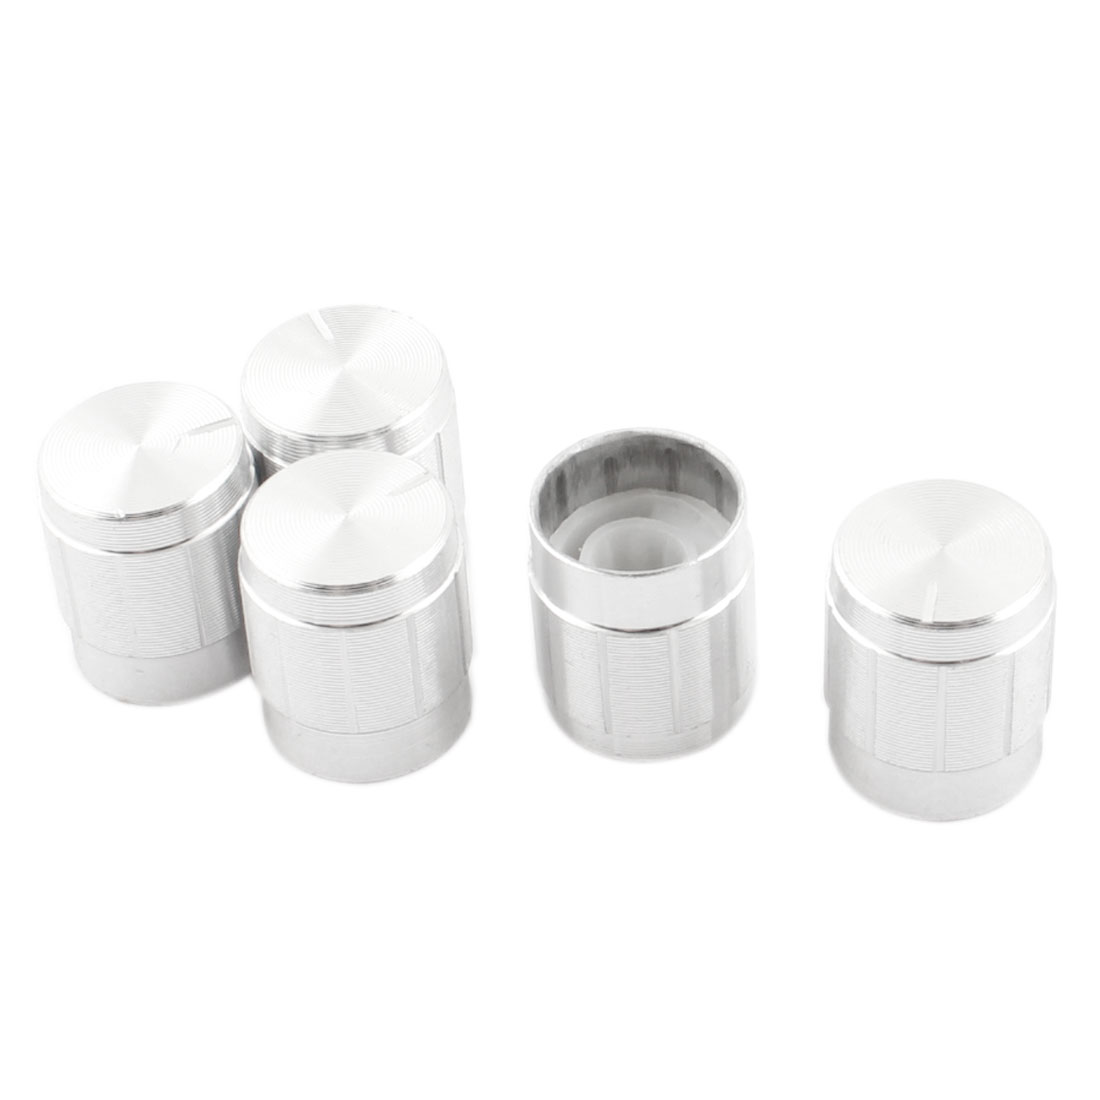 5 Pcs Silver Tone Volume Control Rotary Aluminum Potentiometer Knobs 14mm x 16mm